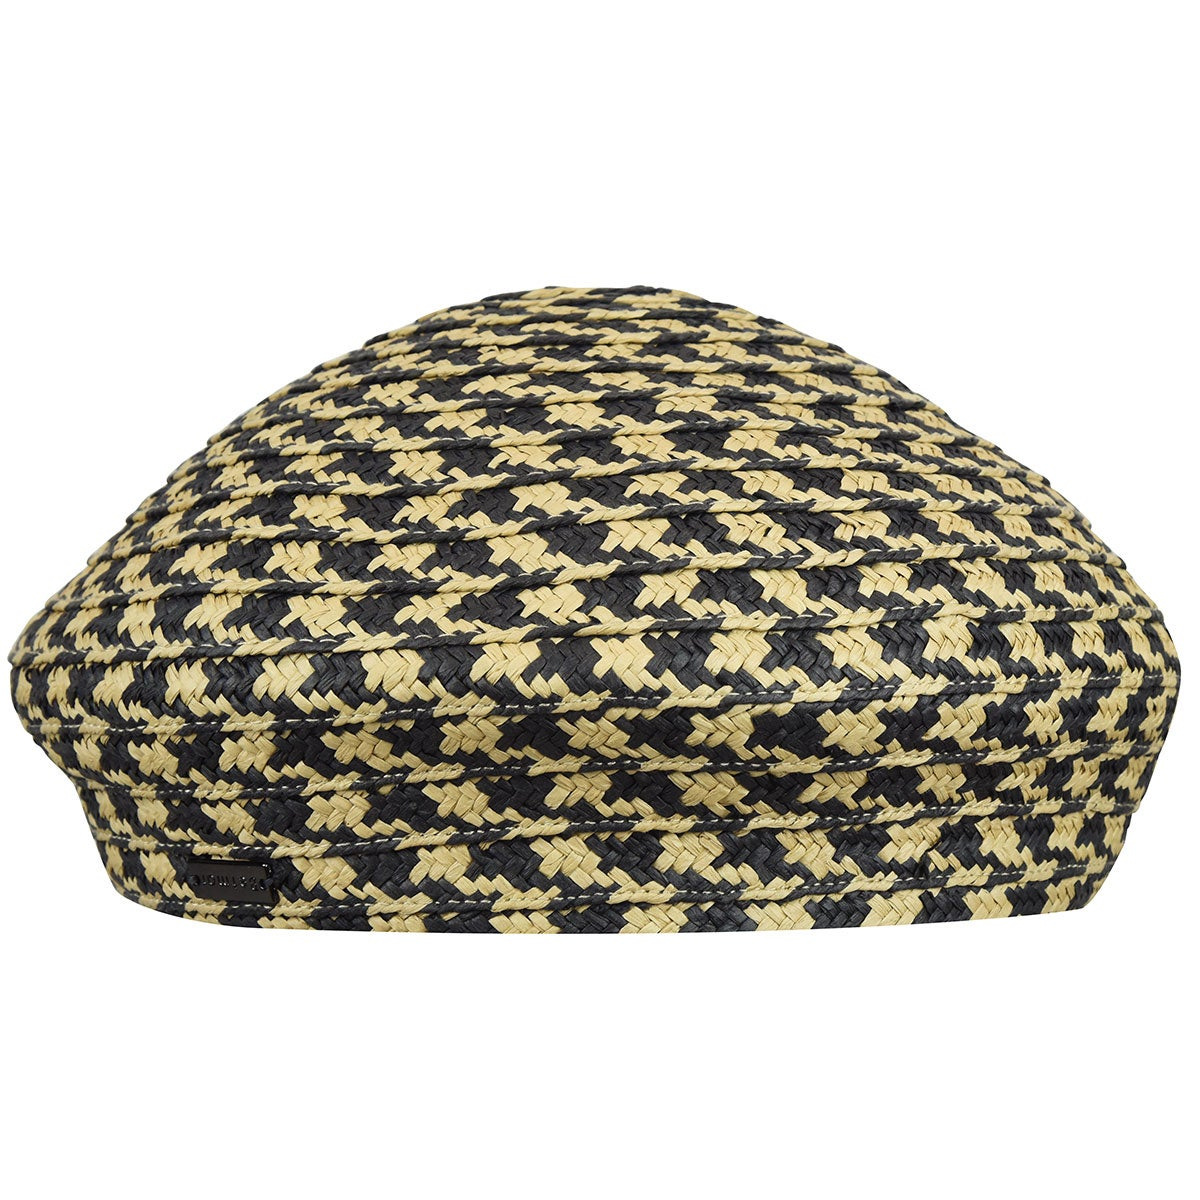 1960s – 70s Style Men's Hats Christine Braided Beret $30.75 AT vintagedancer.com